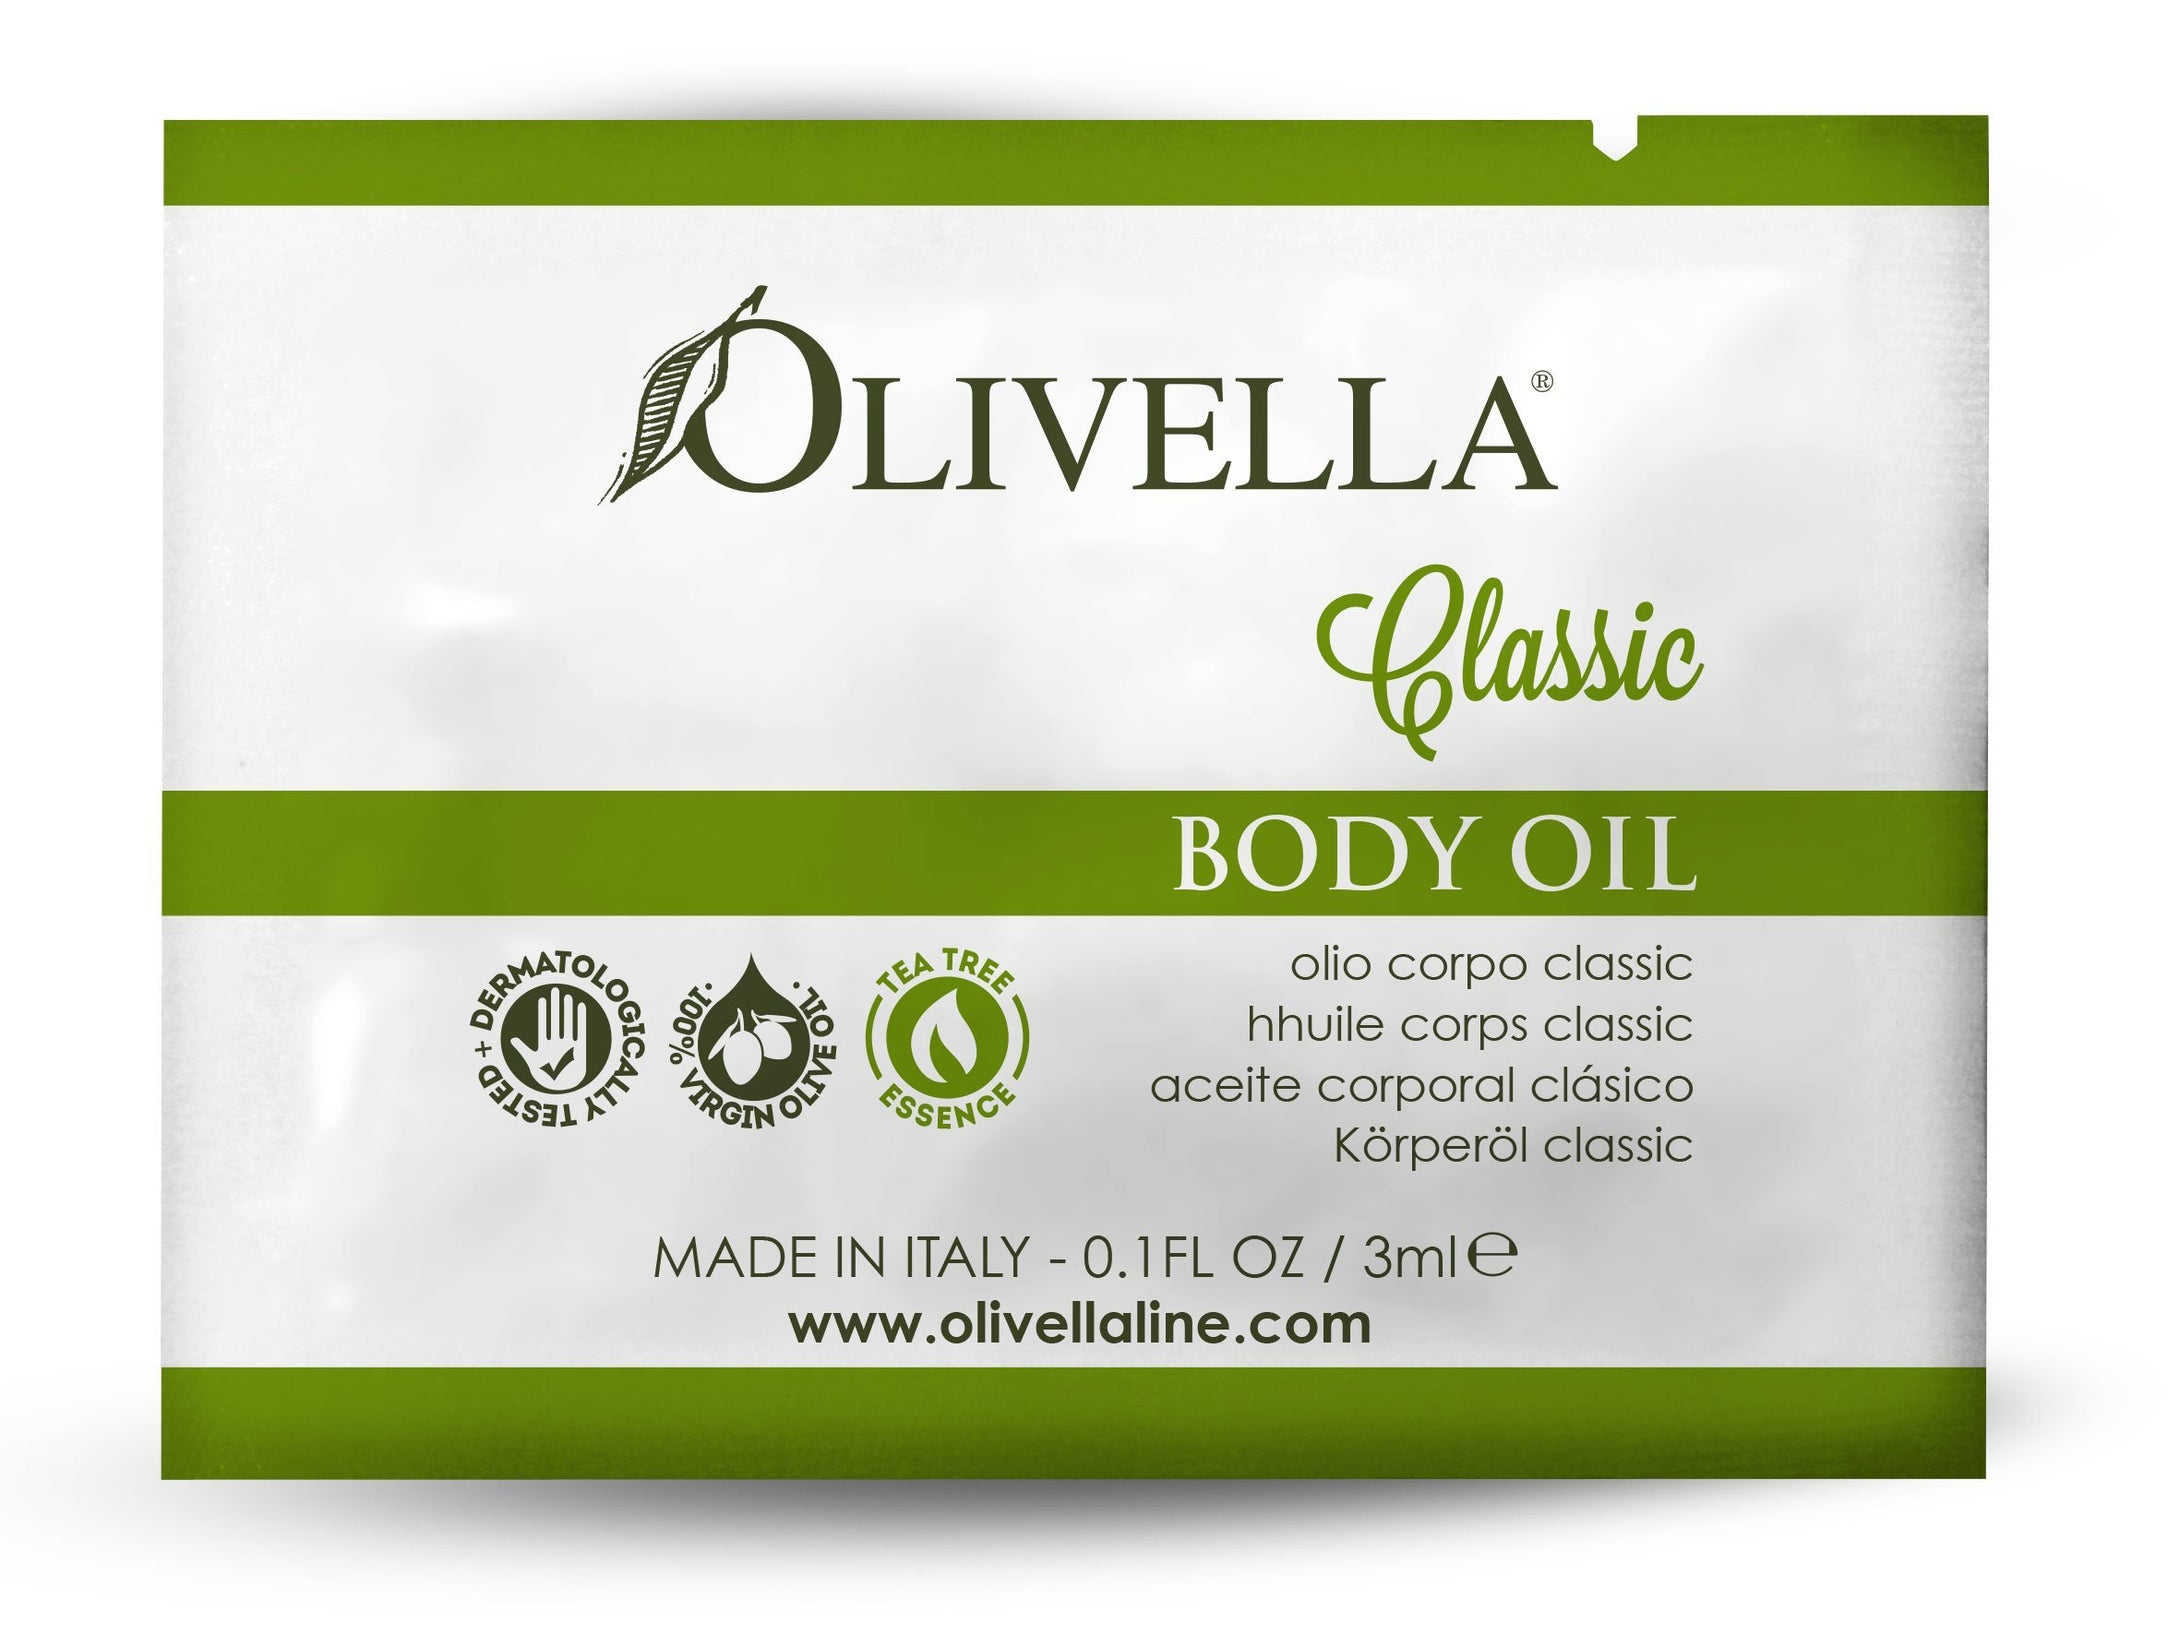 Classic Body Oil Sample - Olivella Official Store